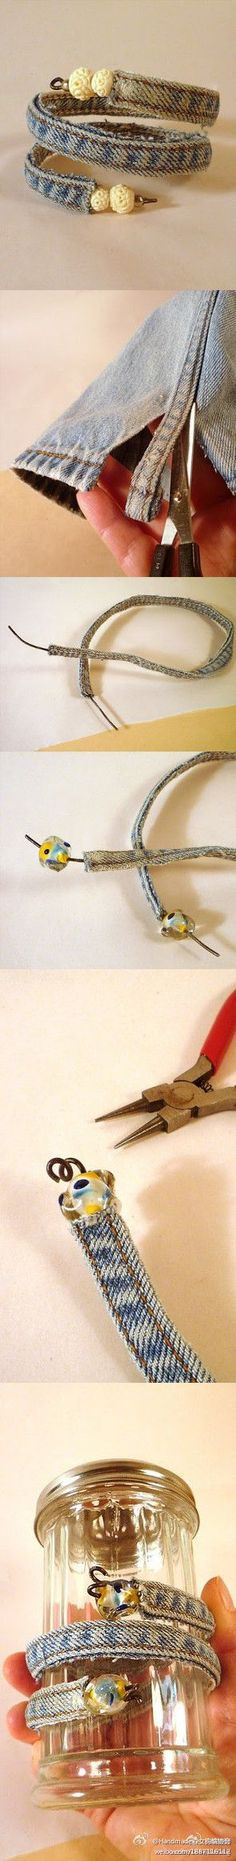 DIY recycled jeans bracelet #diy #crafts